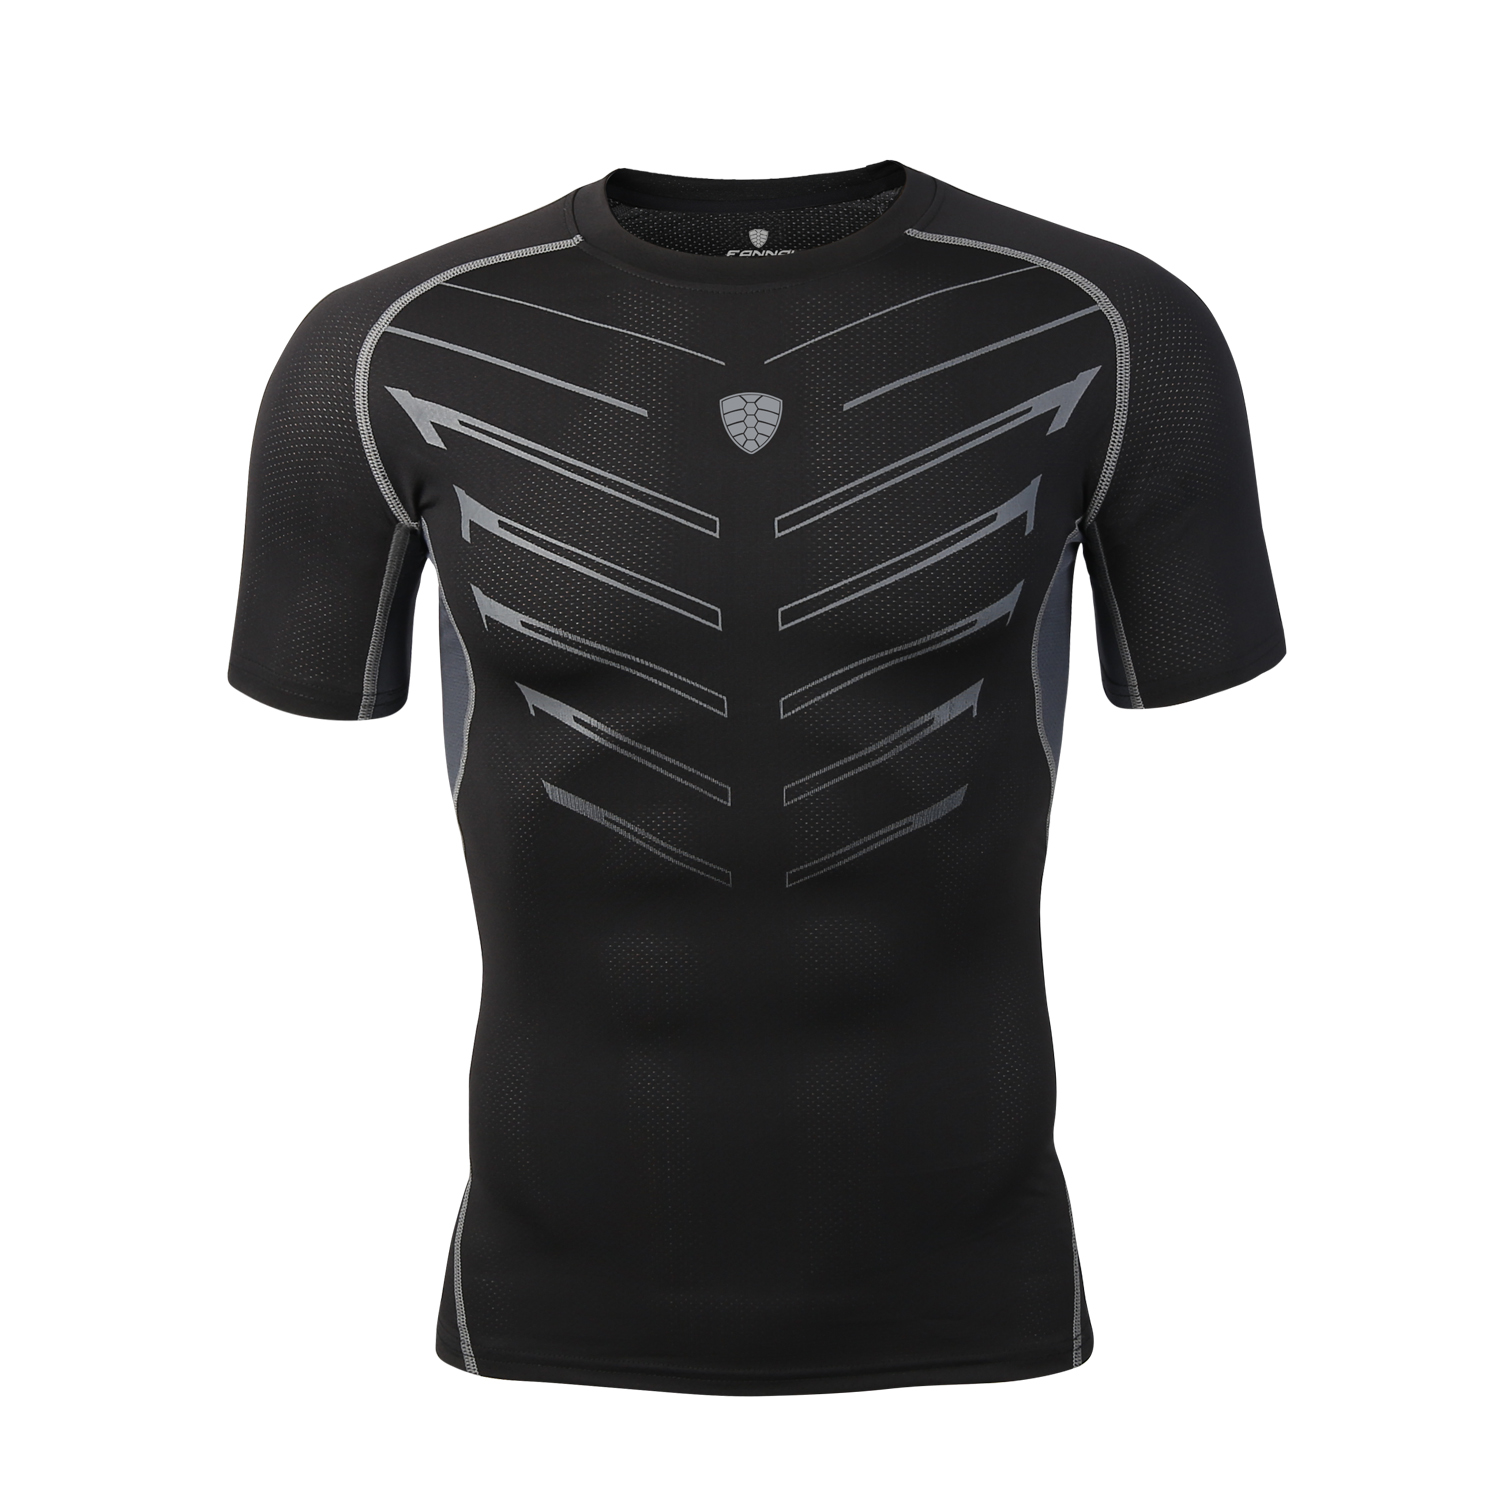 Men/'s Compression Shirt Quick-dry Breathable Gym Running Training Football Tops